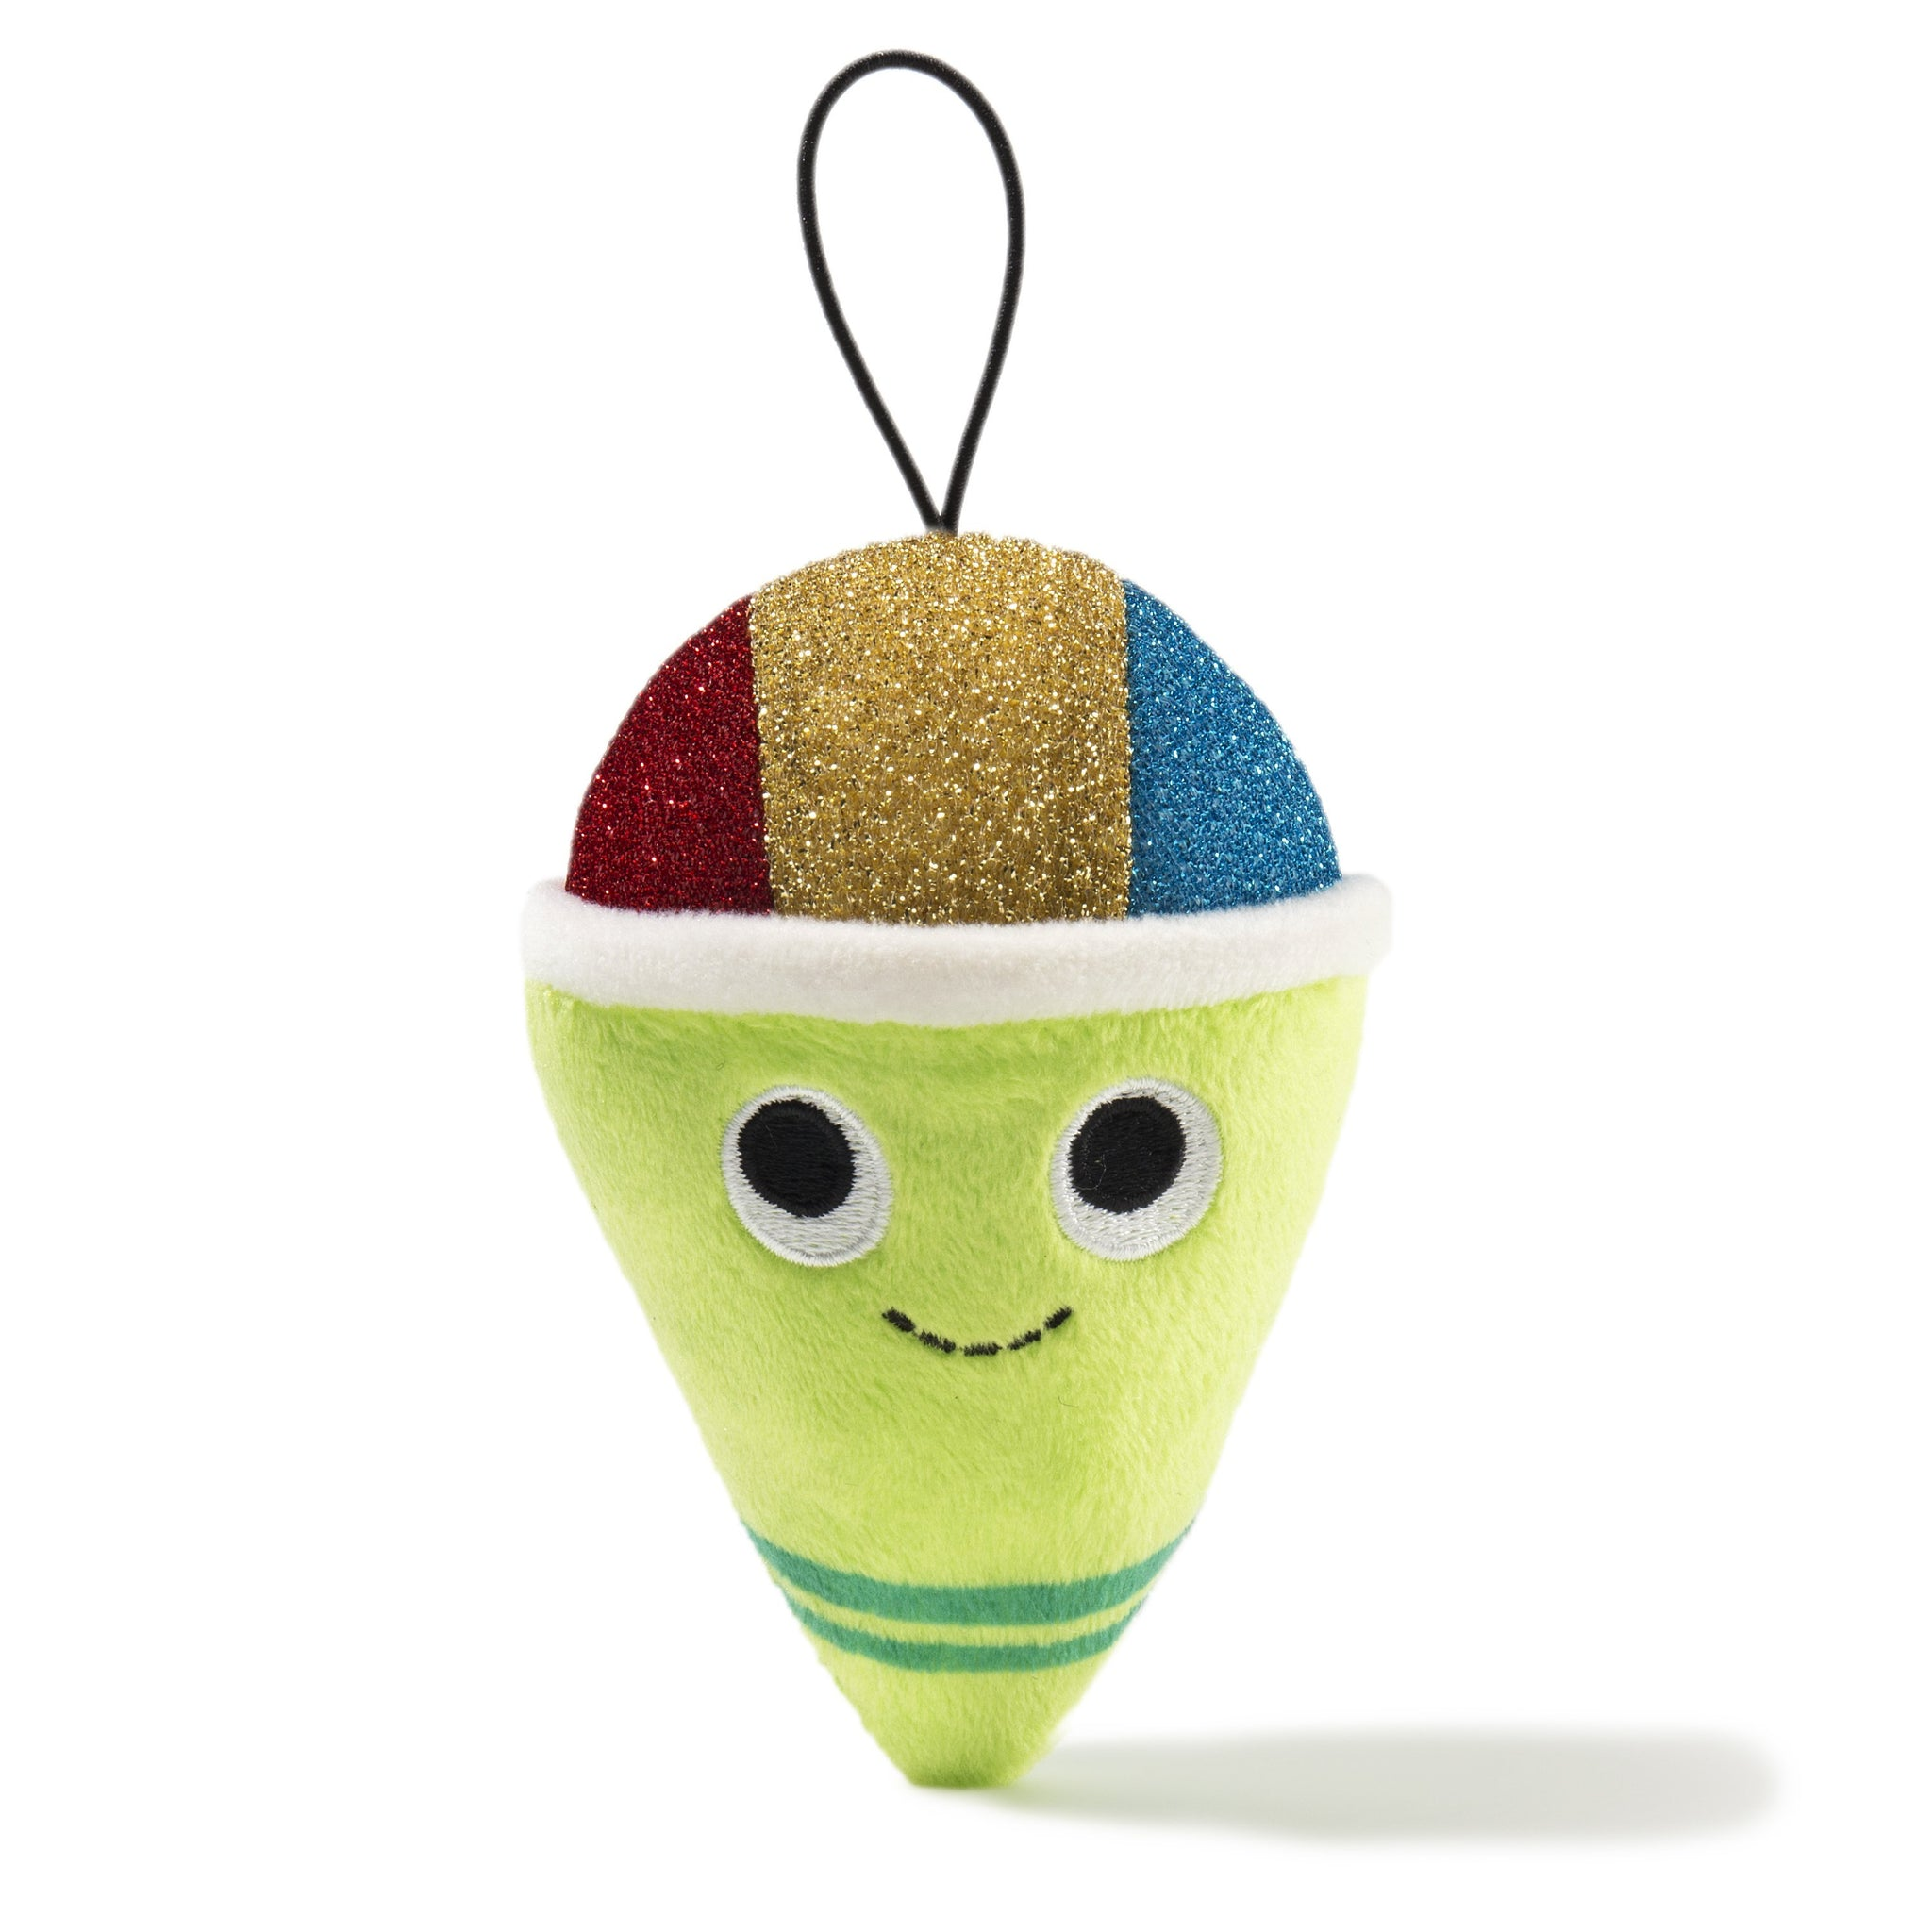 Yummy World Small Snow Cone Plush Ornament - Kidrobot - Designer Art Toys